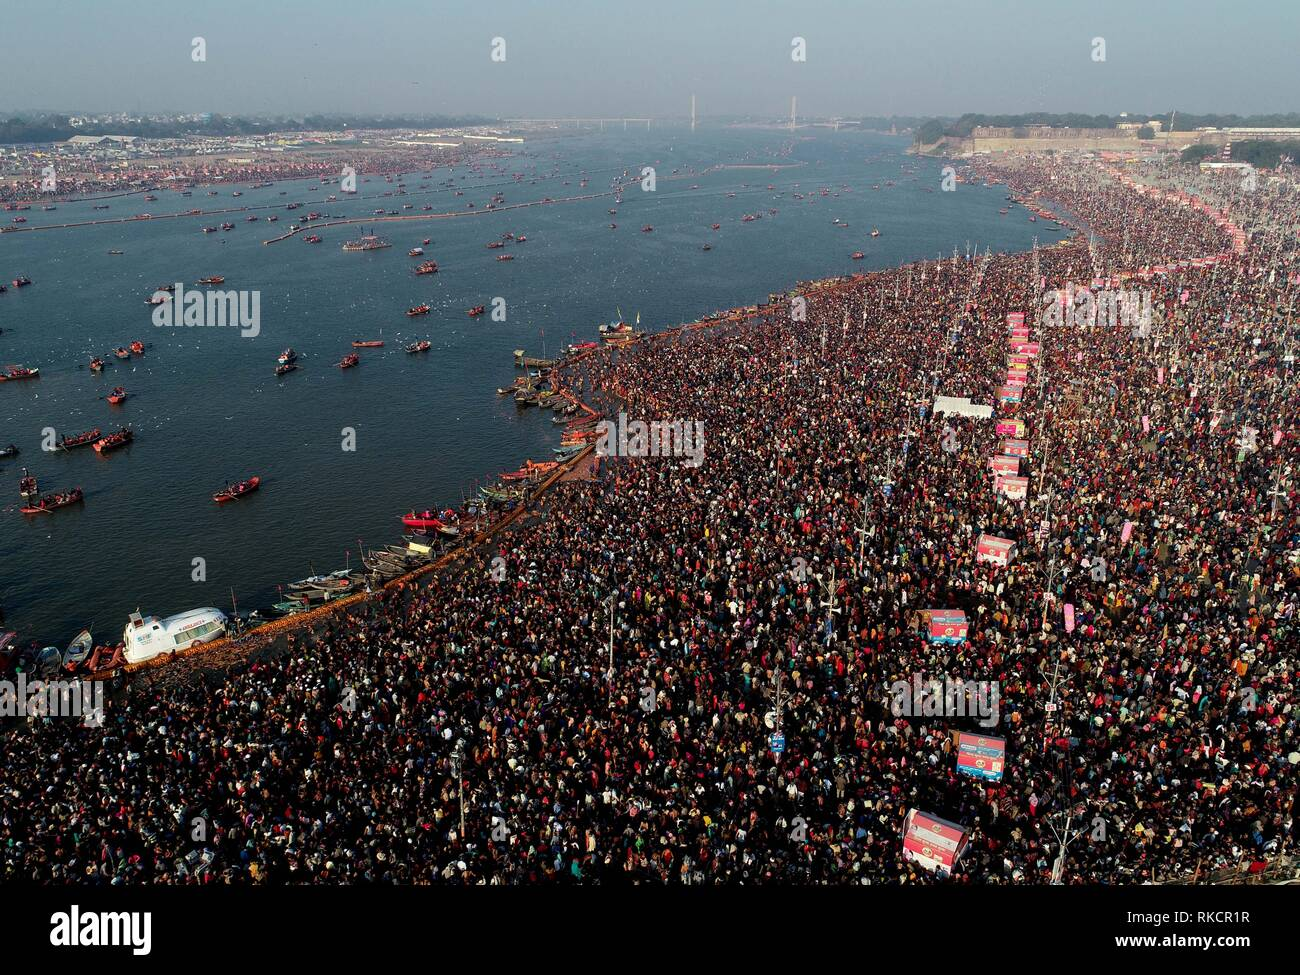 Allahabad, India. 10th Feb, 2019. An areal view of Sangam as Sadhus and devotees take holydip on the occasion of Basant Panchami festival during Kumbh or Pitcher festival in Allahabad. Credit: Prabhat Kumar Verma/Pacific Press/Alamy Live News Stock Photo